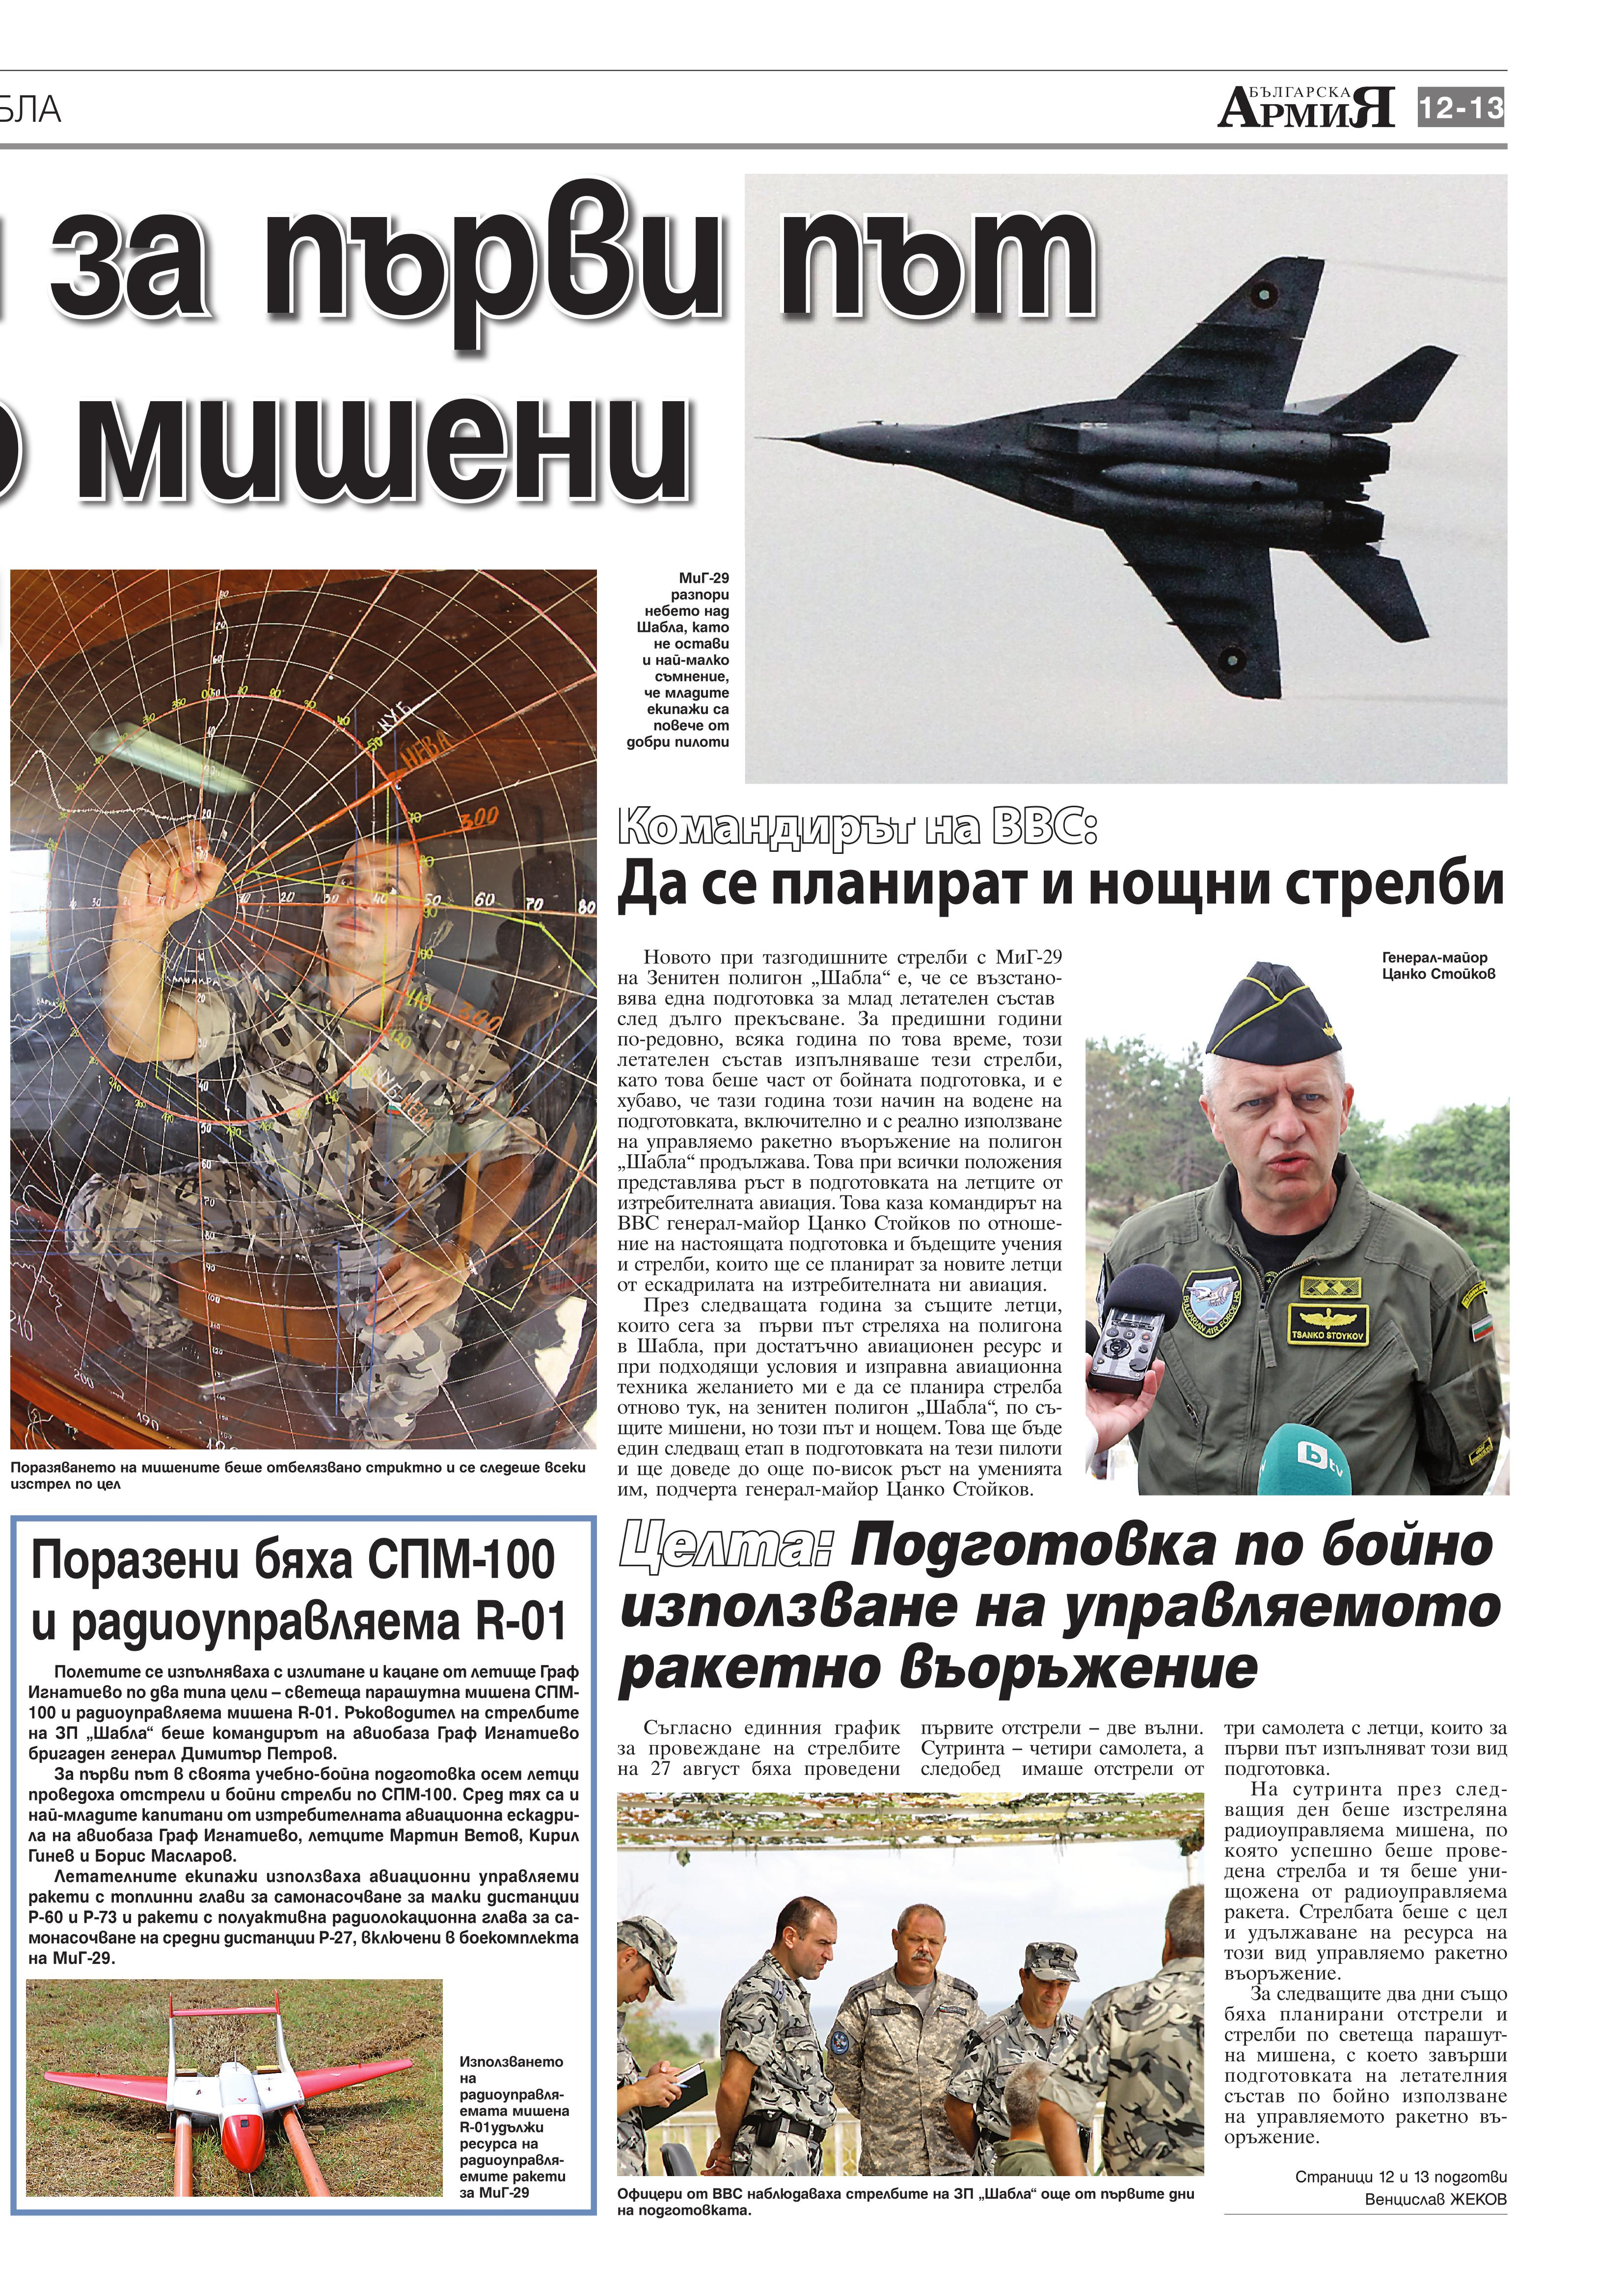 https://armymedia.bg/wp-content/uploads/2015/06/13.page1_-64.jpg